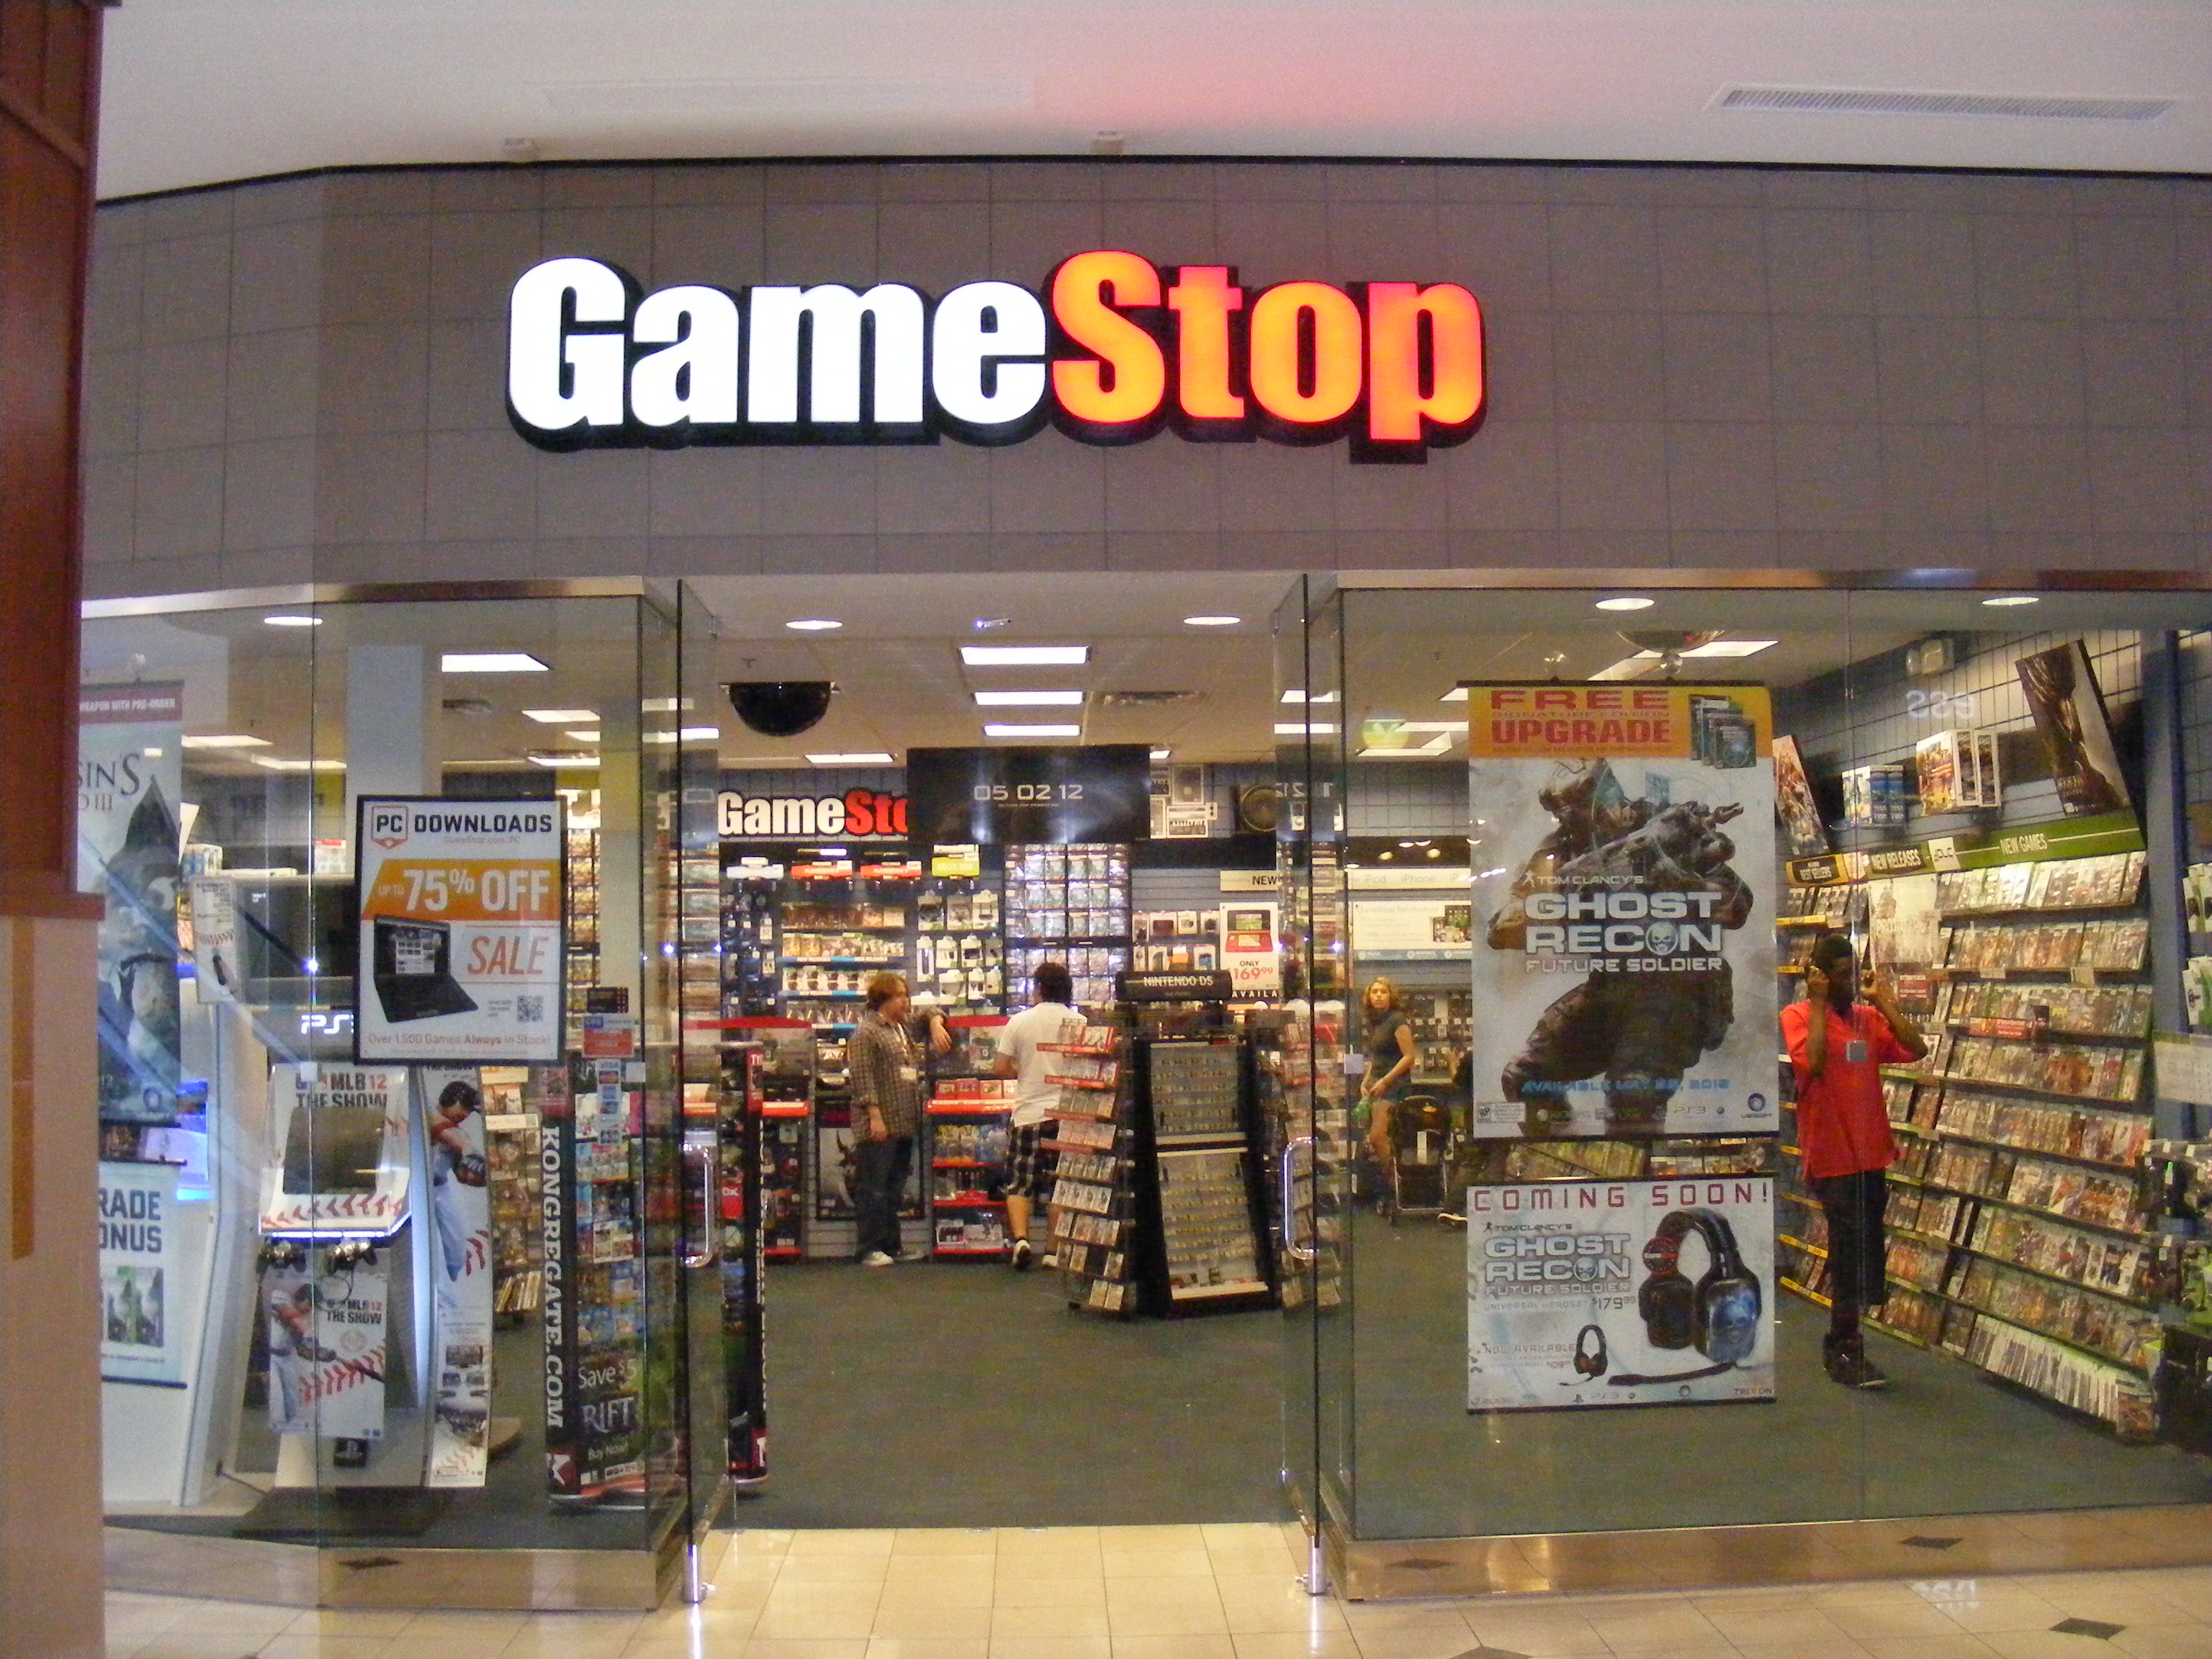 Gamestop Stock Price Tanks After Microsoft Announces New